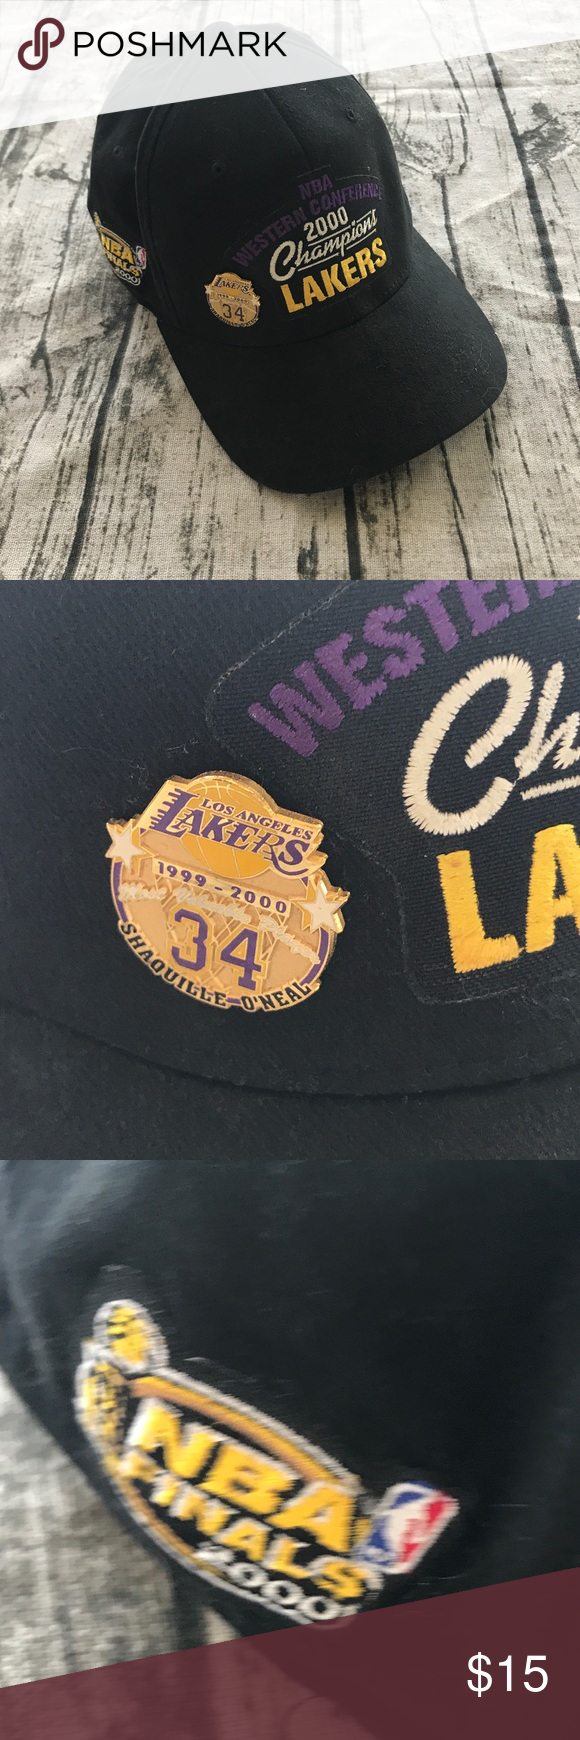 6bf2fd8639110 2000 Lakers Nike Hat w  Shaq  34 Pin 2000 Los Angeles Lakers Nike Black Hat  Logo Athletic w  Shaq  34 Pin Please see photos as we do consider them to  be ...